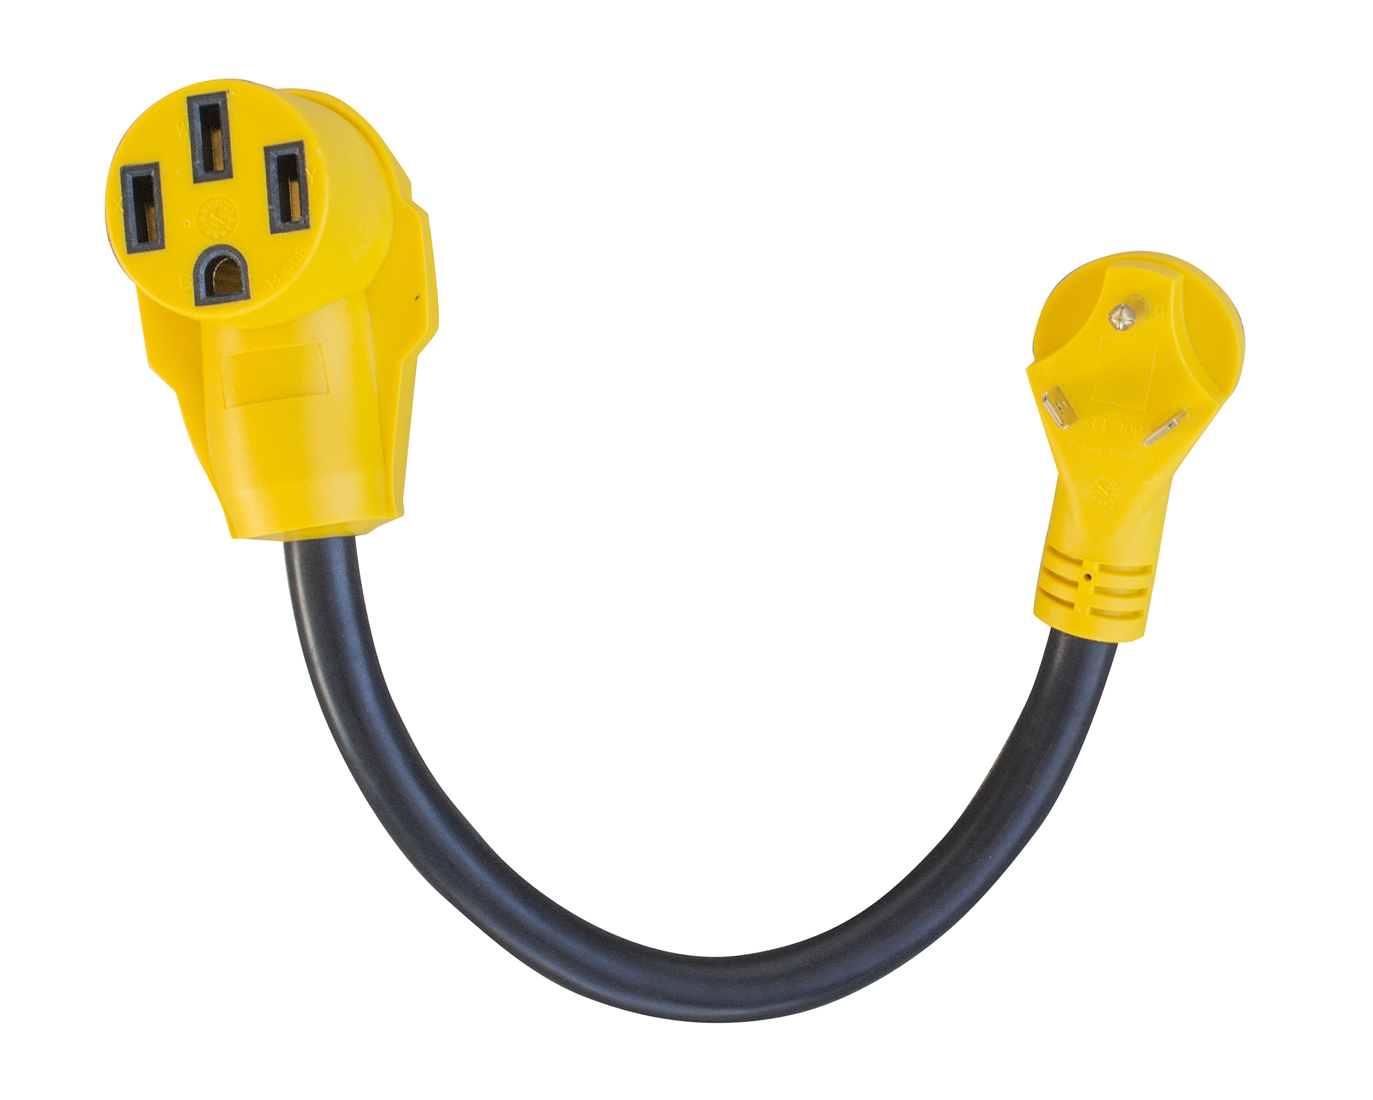 18 in. 125 Volt 30 Amp Male to 50 Amp Female Dog-bone RV Camper Power Cable